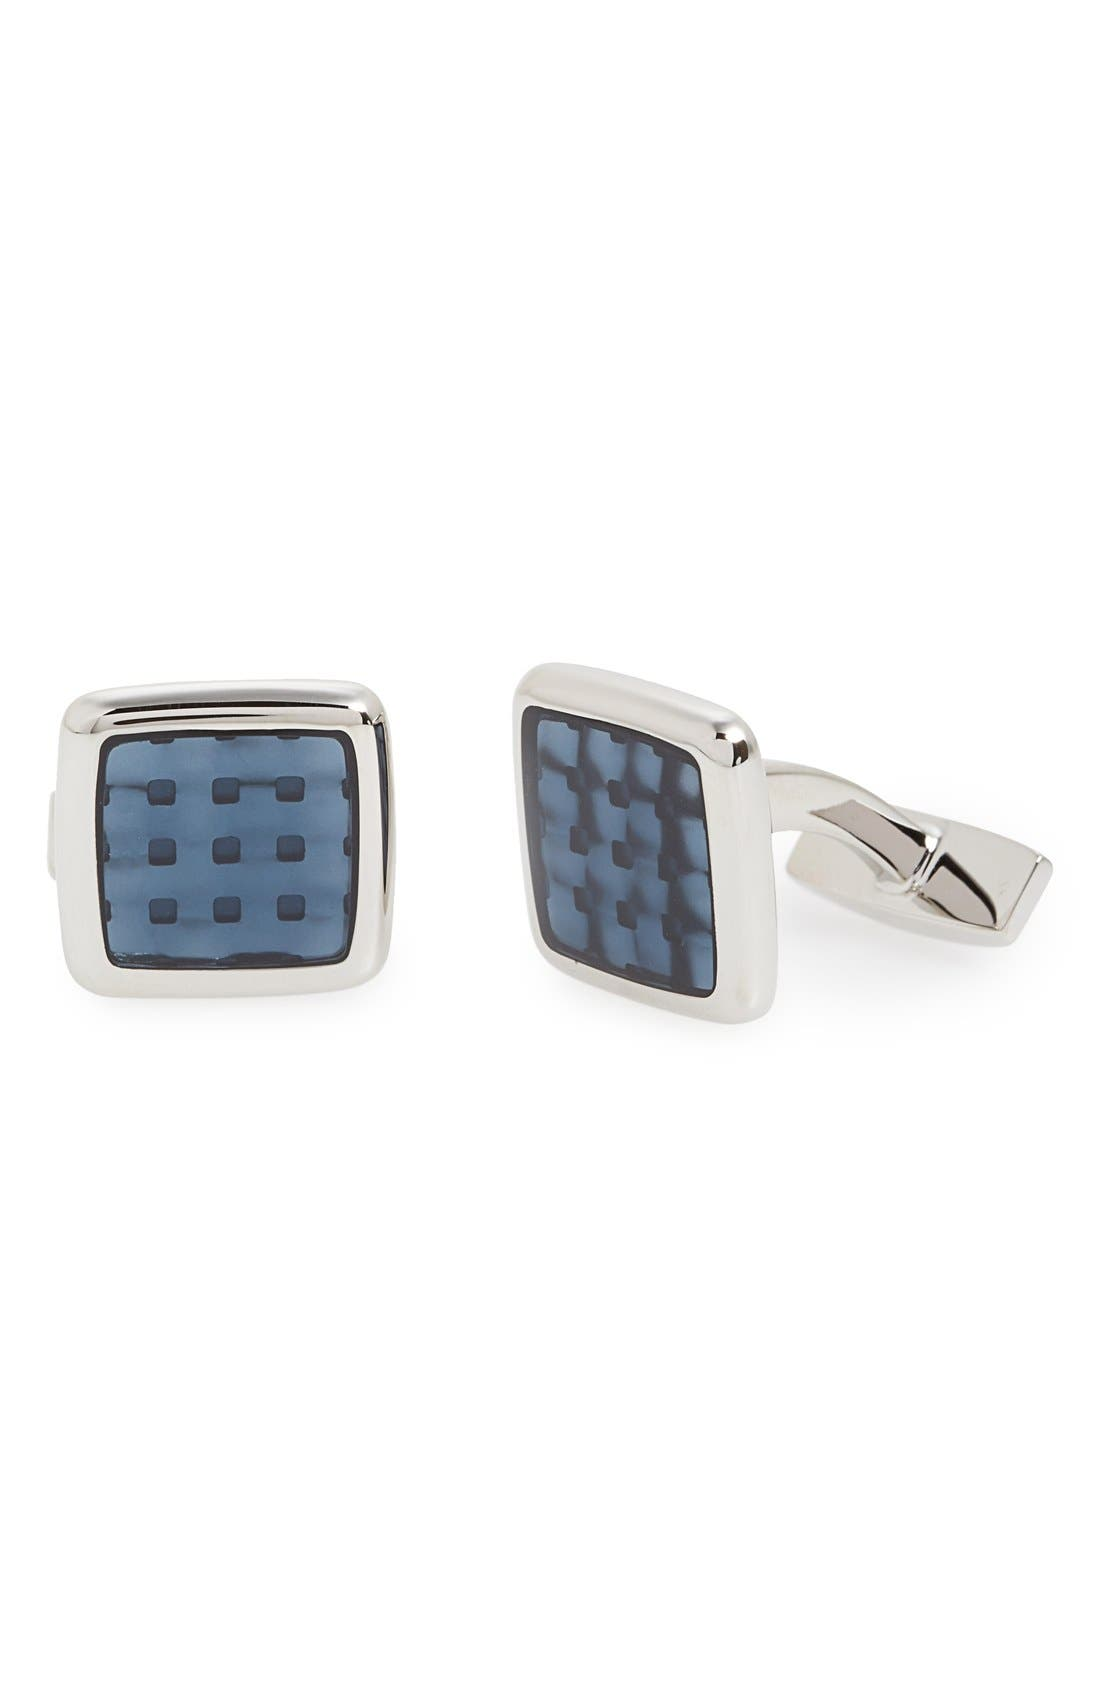 Alternate Image 1 Selected - BOSS 'Peter' Cuff Links